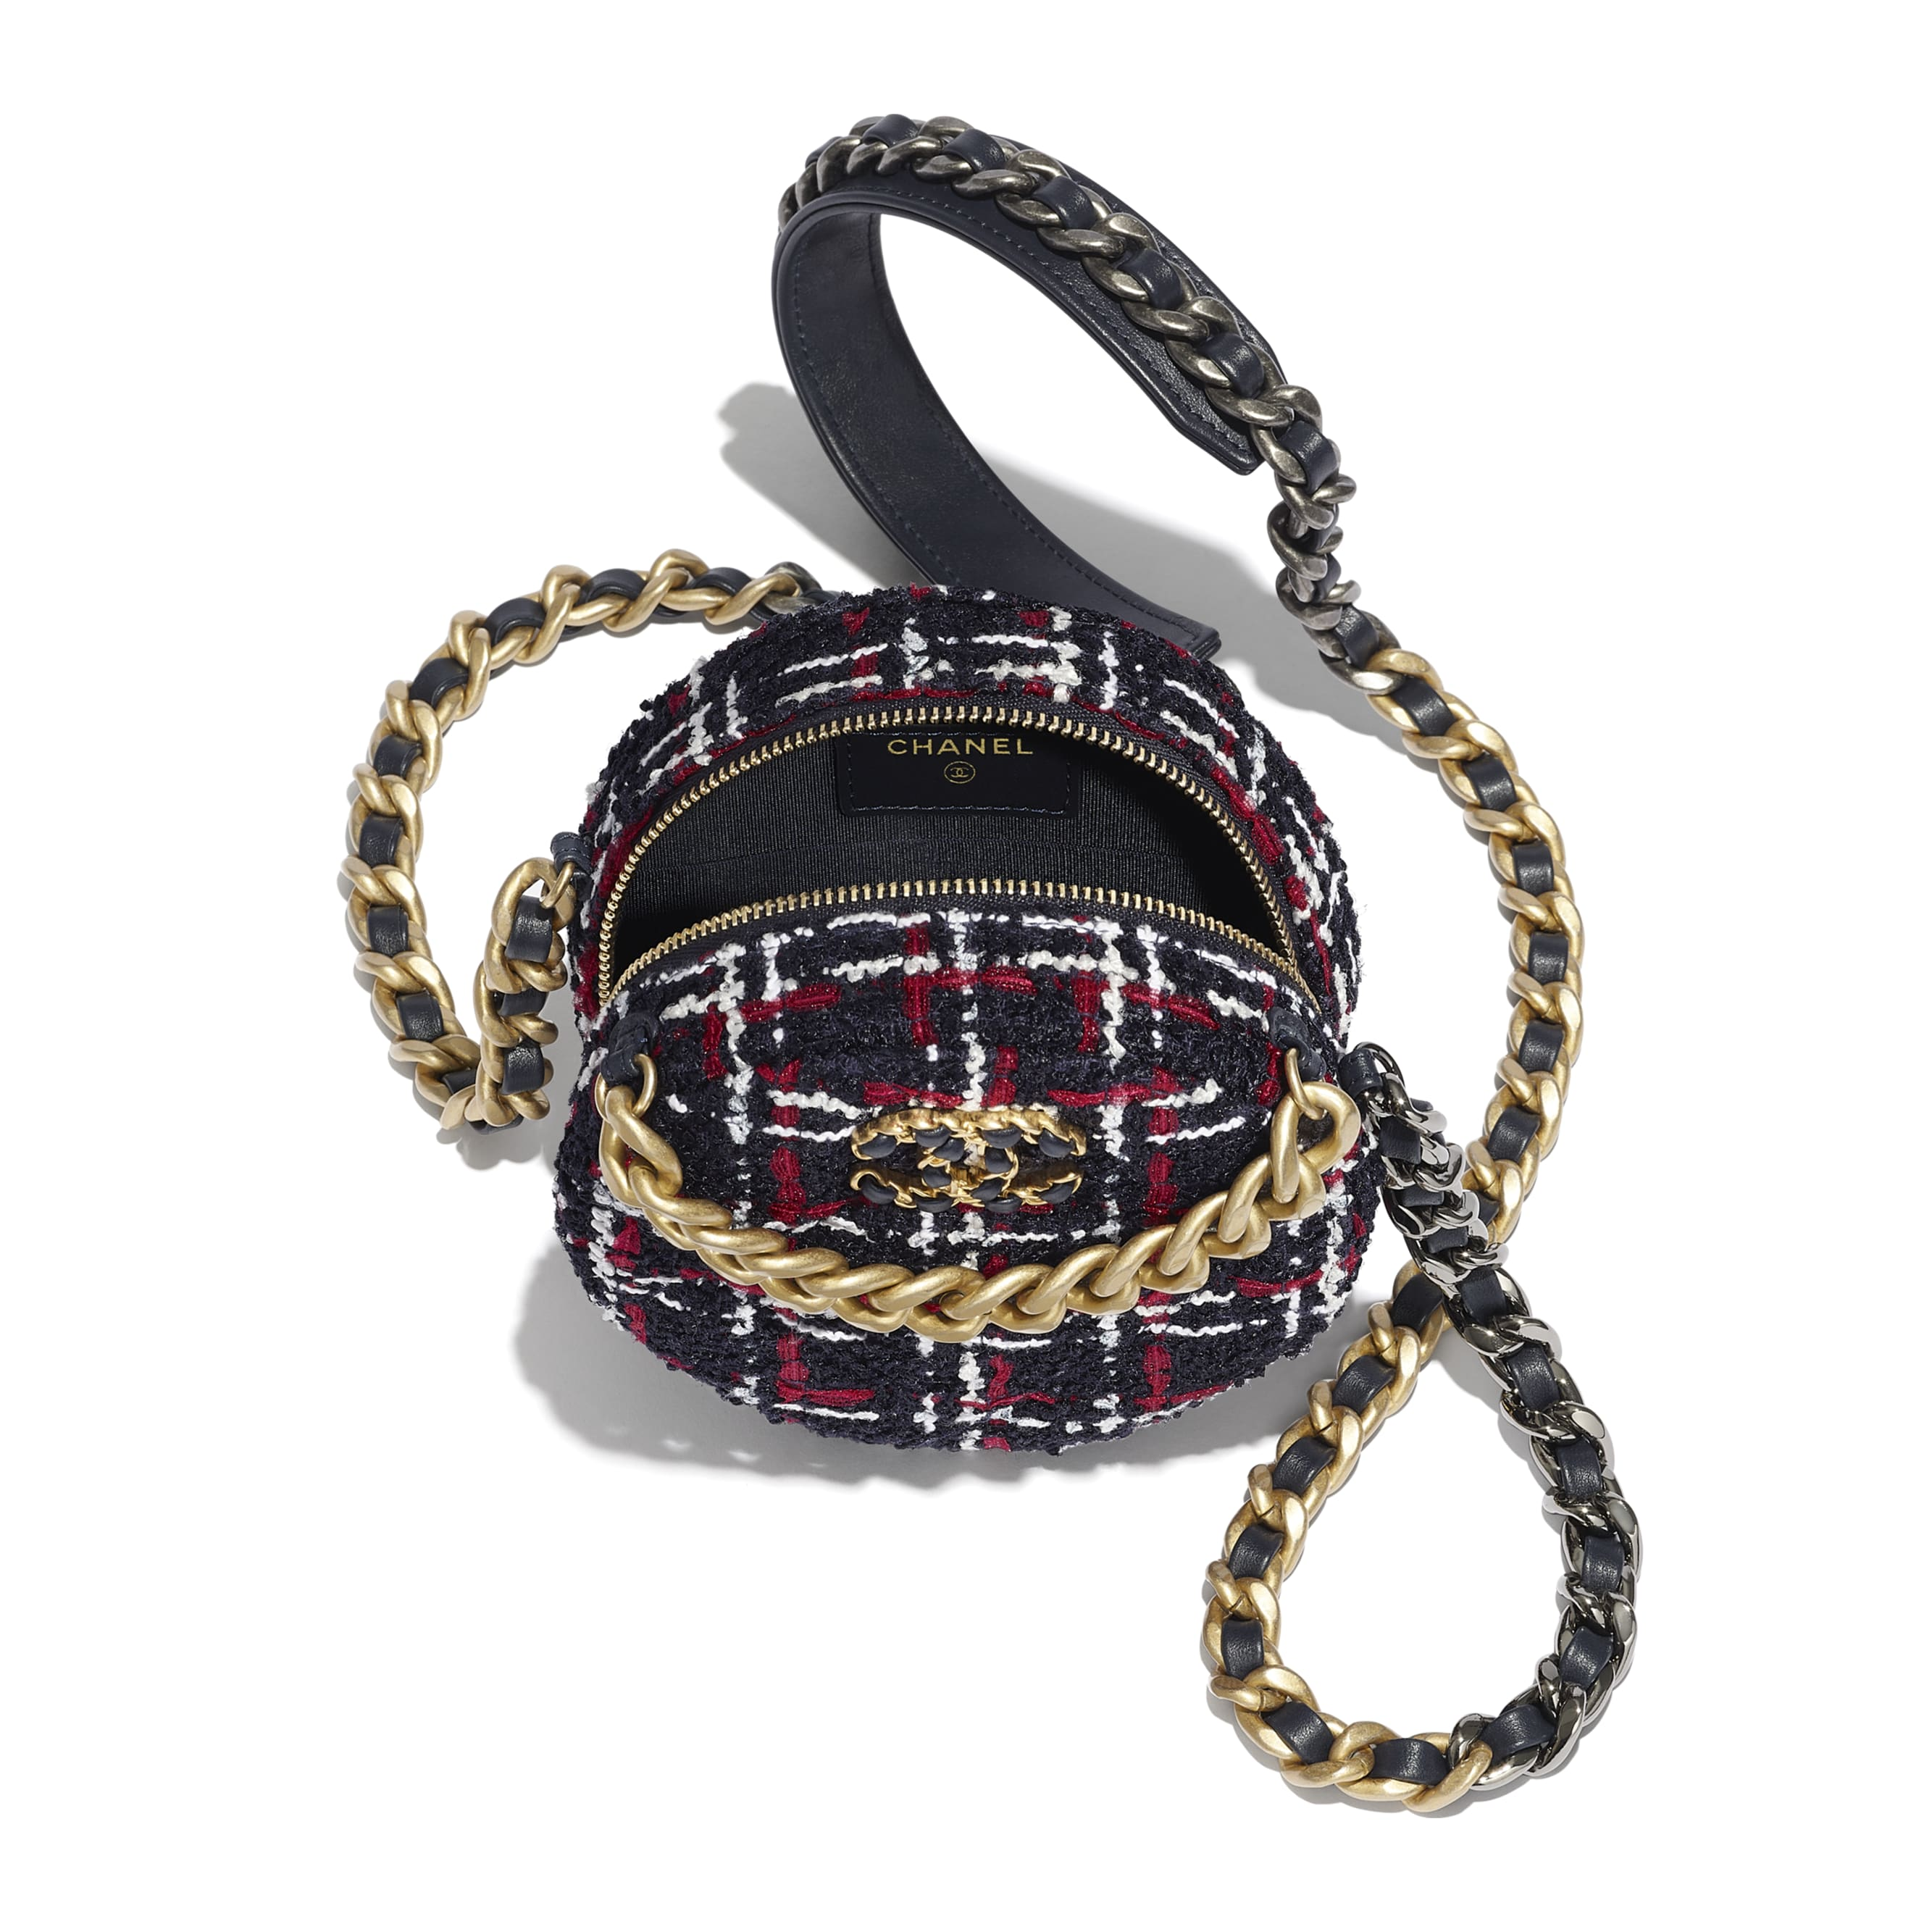 CHANEL 19 Clutch with Chain - Navy Blue, White & Red - Tweed, Gold-Tone, Silver-Tone & Ruthenium-Finish Metal - Alternative view - see standard sized version